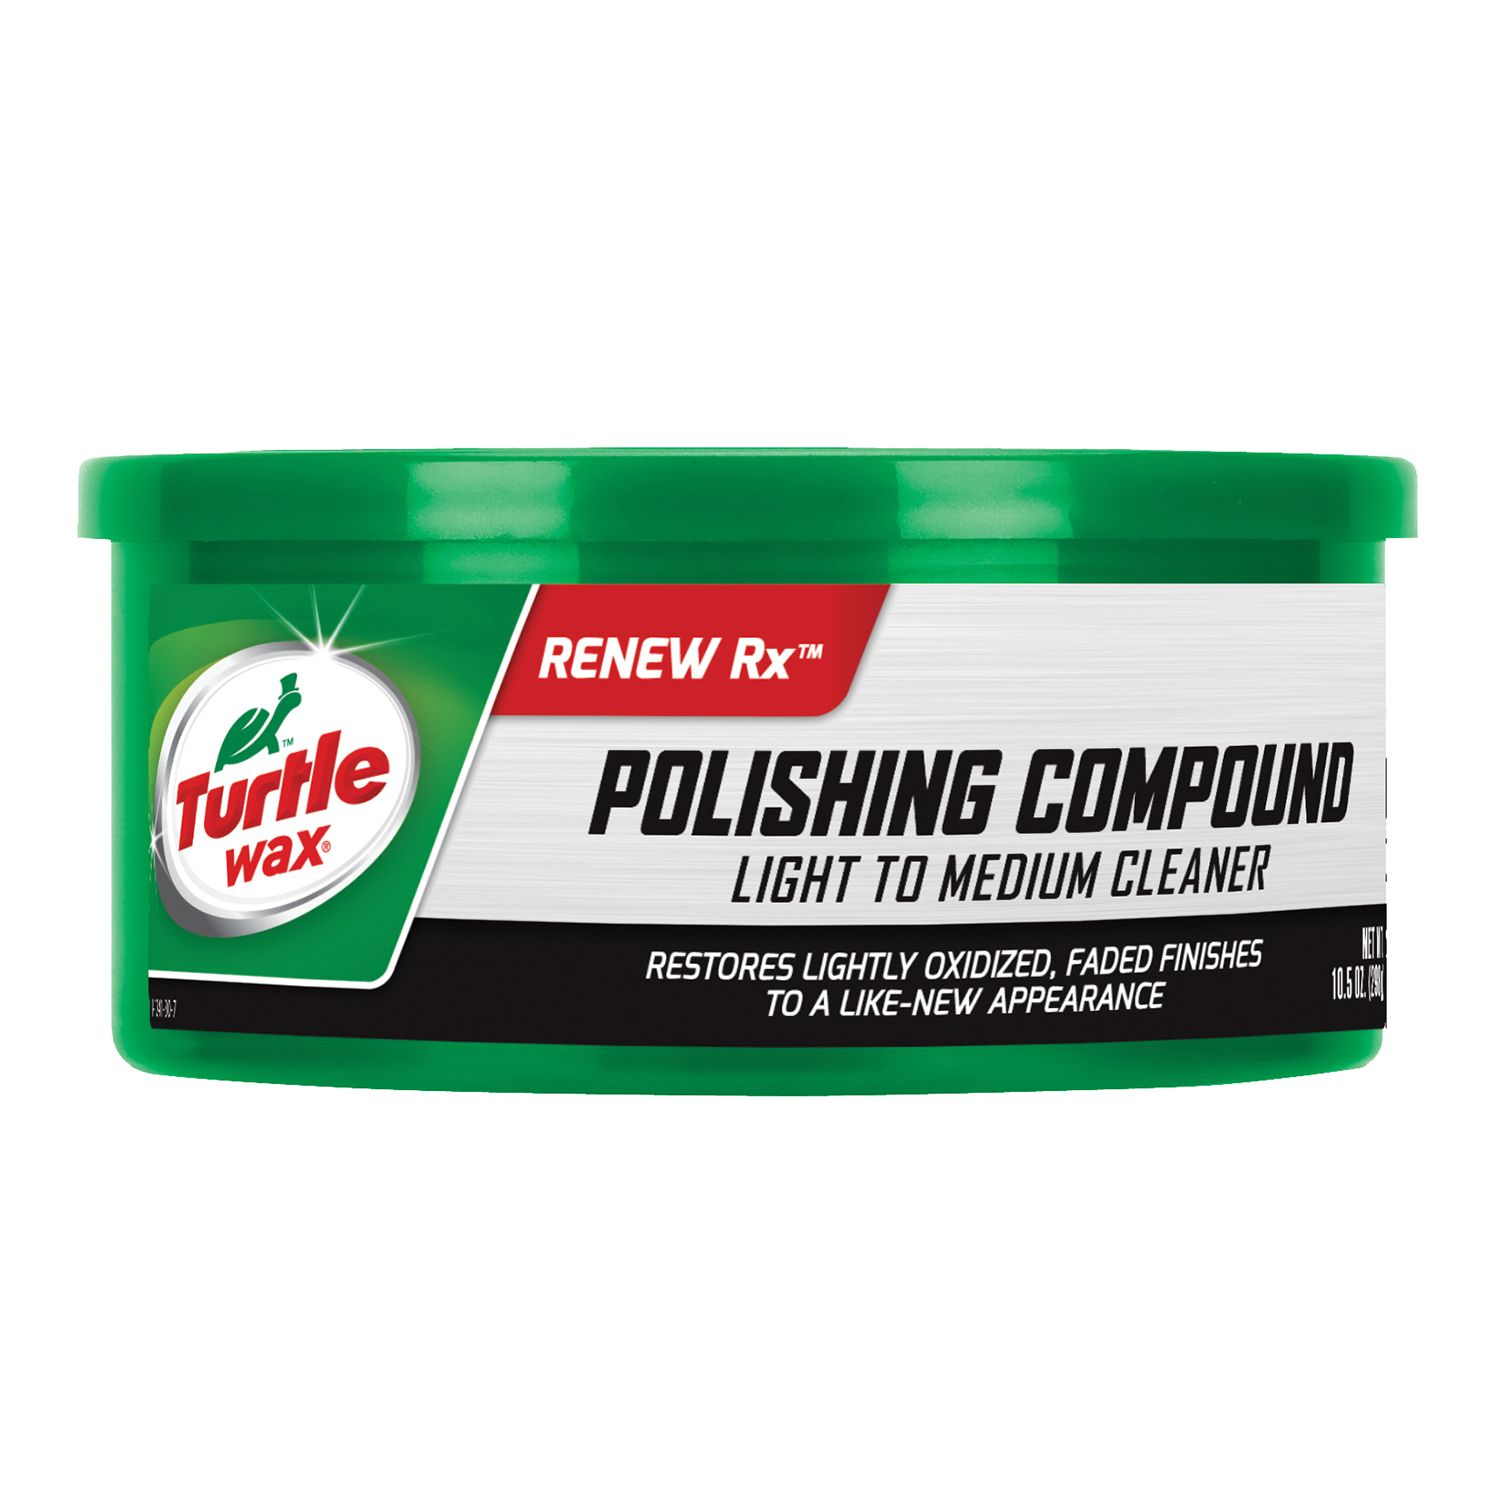 T241A Turtle Wax Inc. Polishing Compound Removes Oxidized Pigment